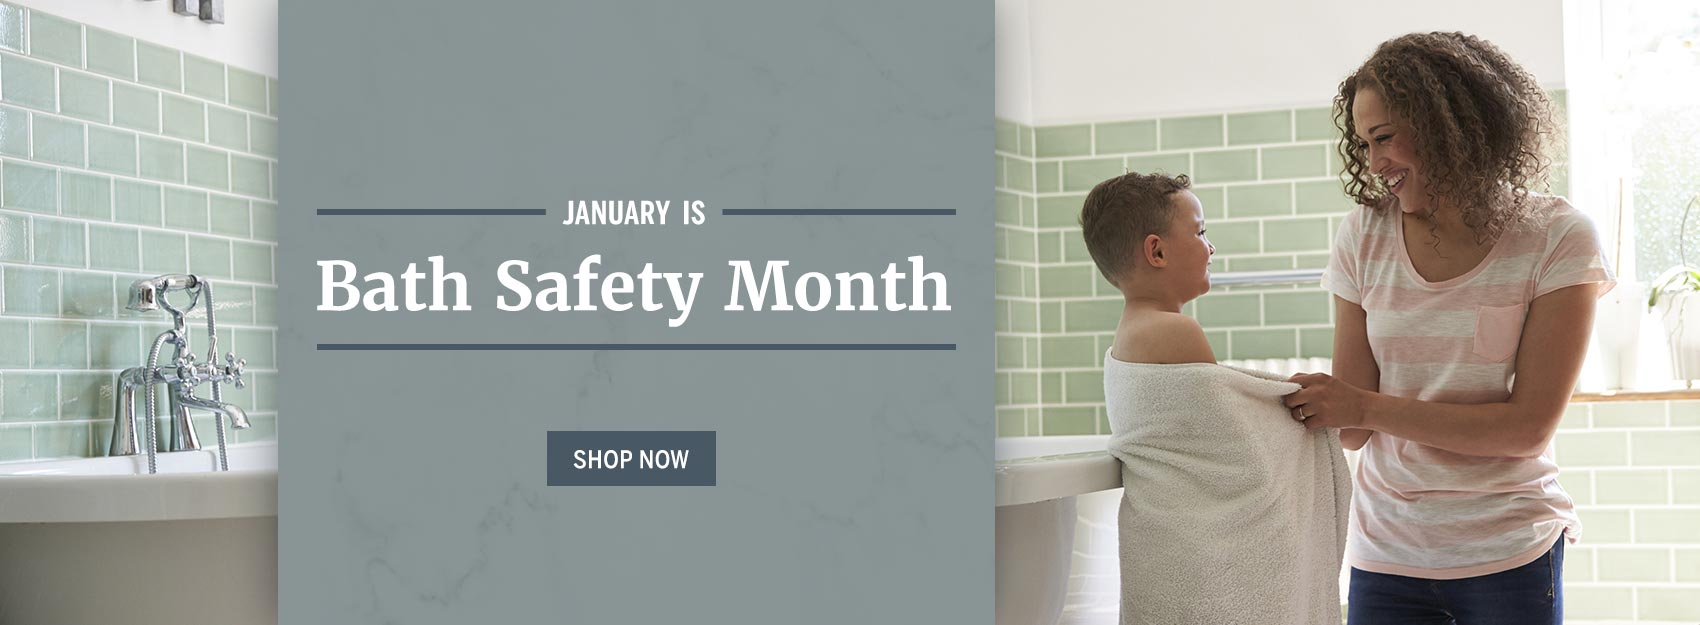 Save an extra 5% on all items during our Bathroom Safety sale